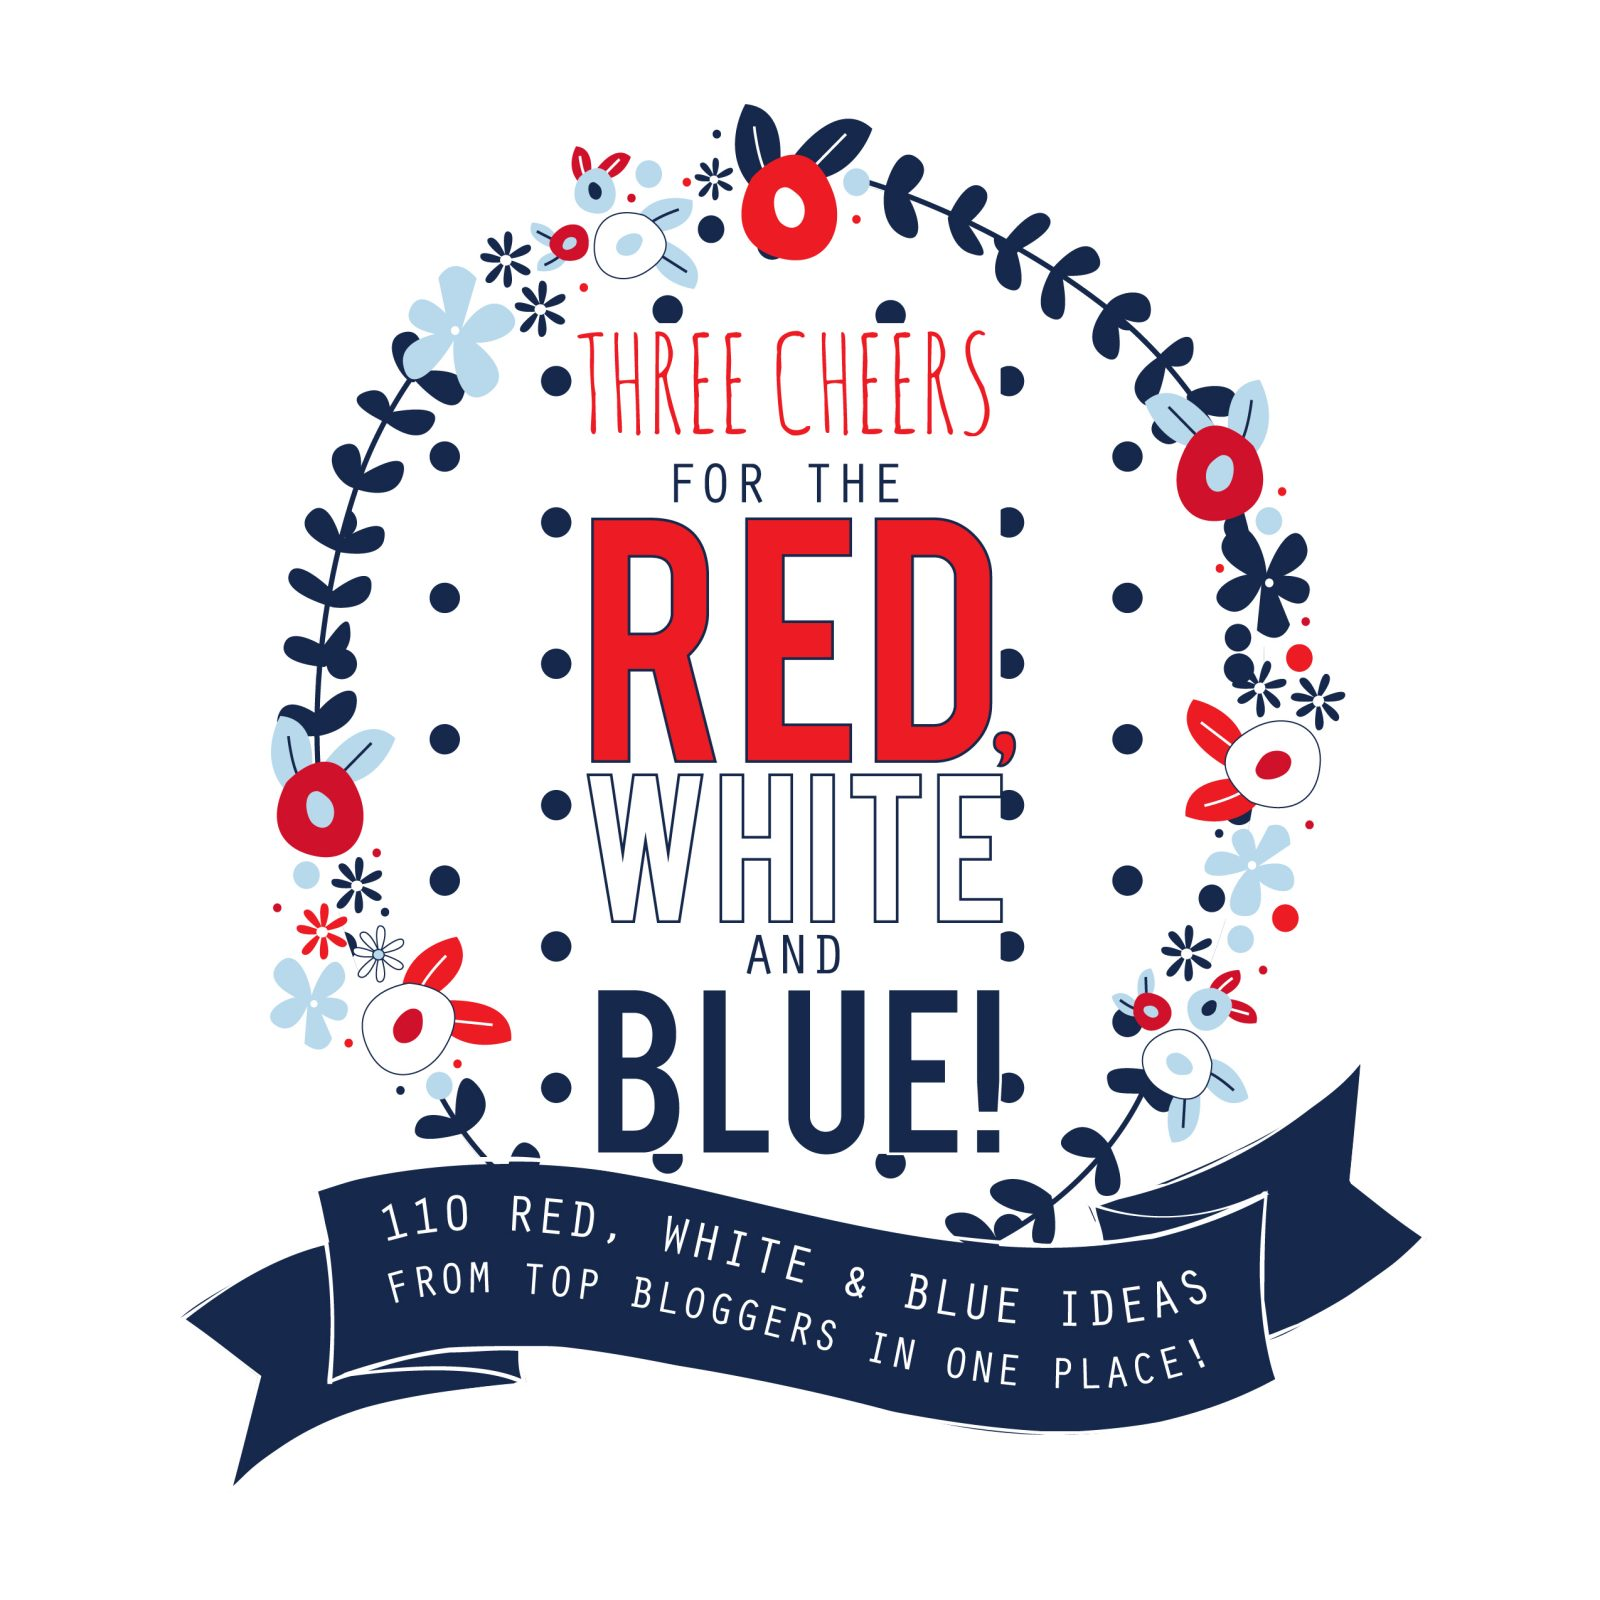 Three Cheers for the Red White and Blue final logo 2 Sweet Land of Liberty Printable 14